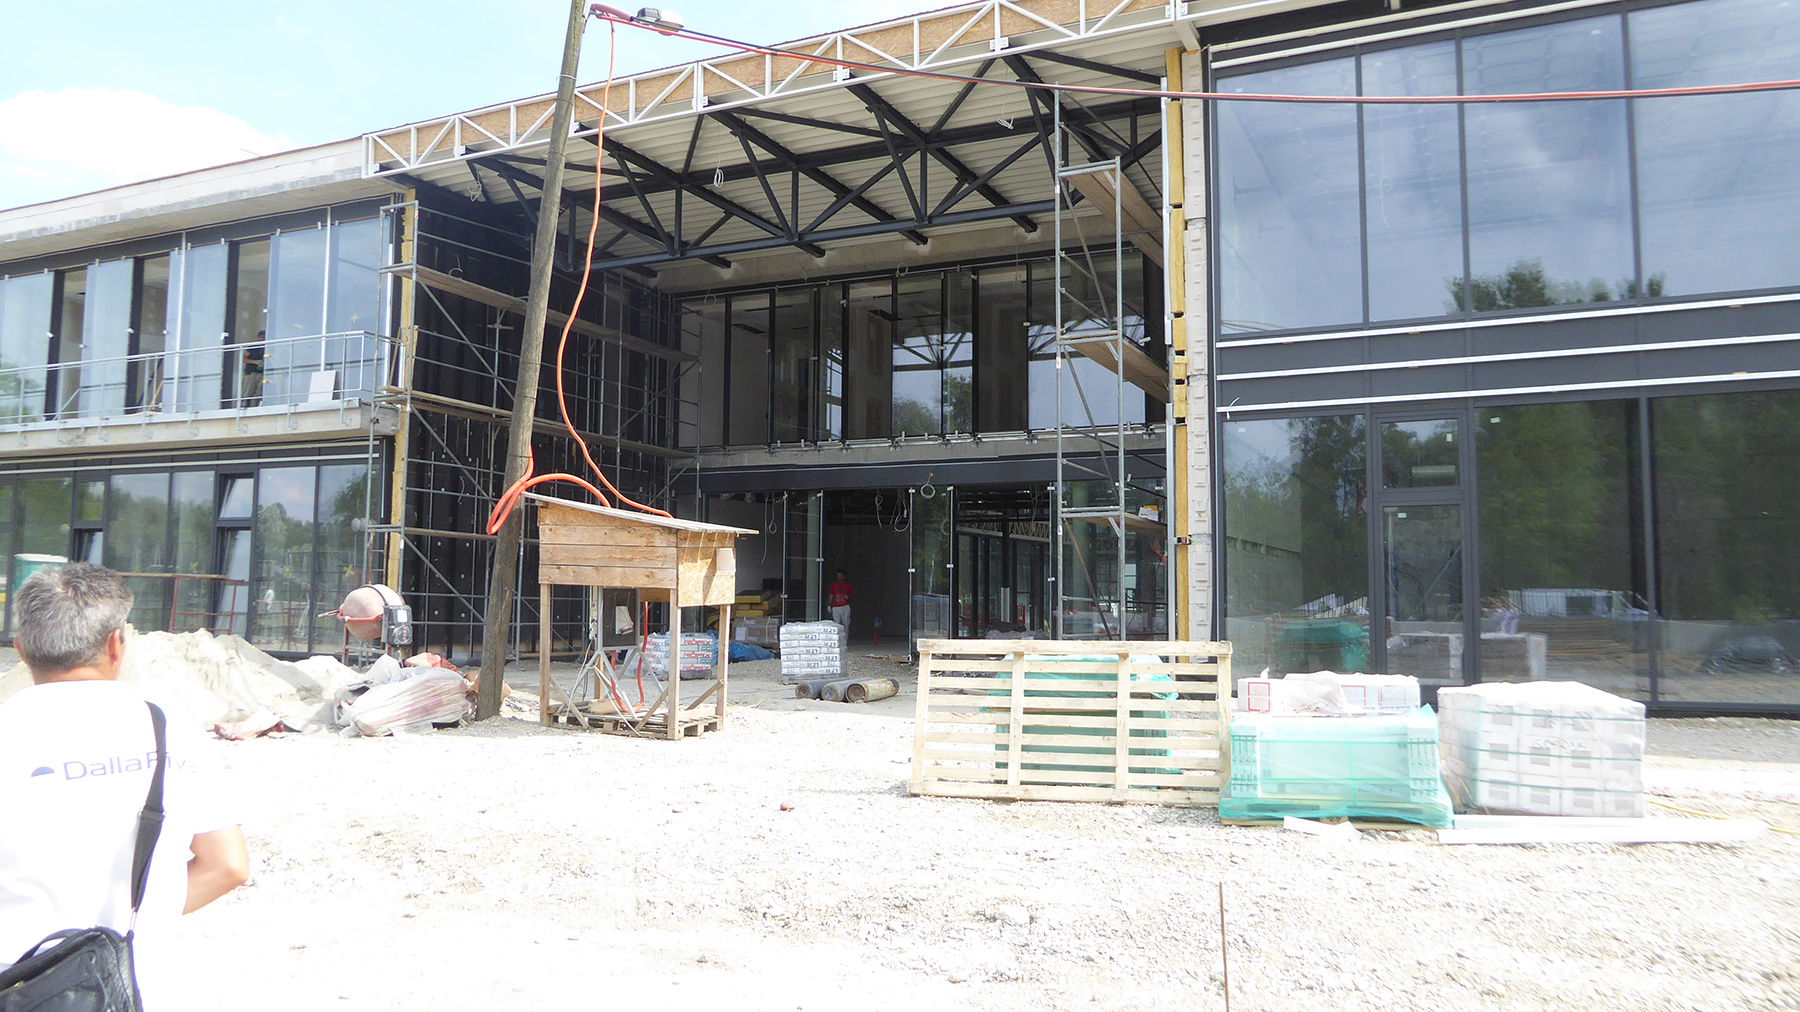 The design of the gym from the outside